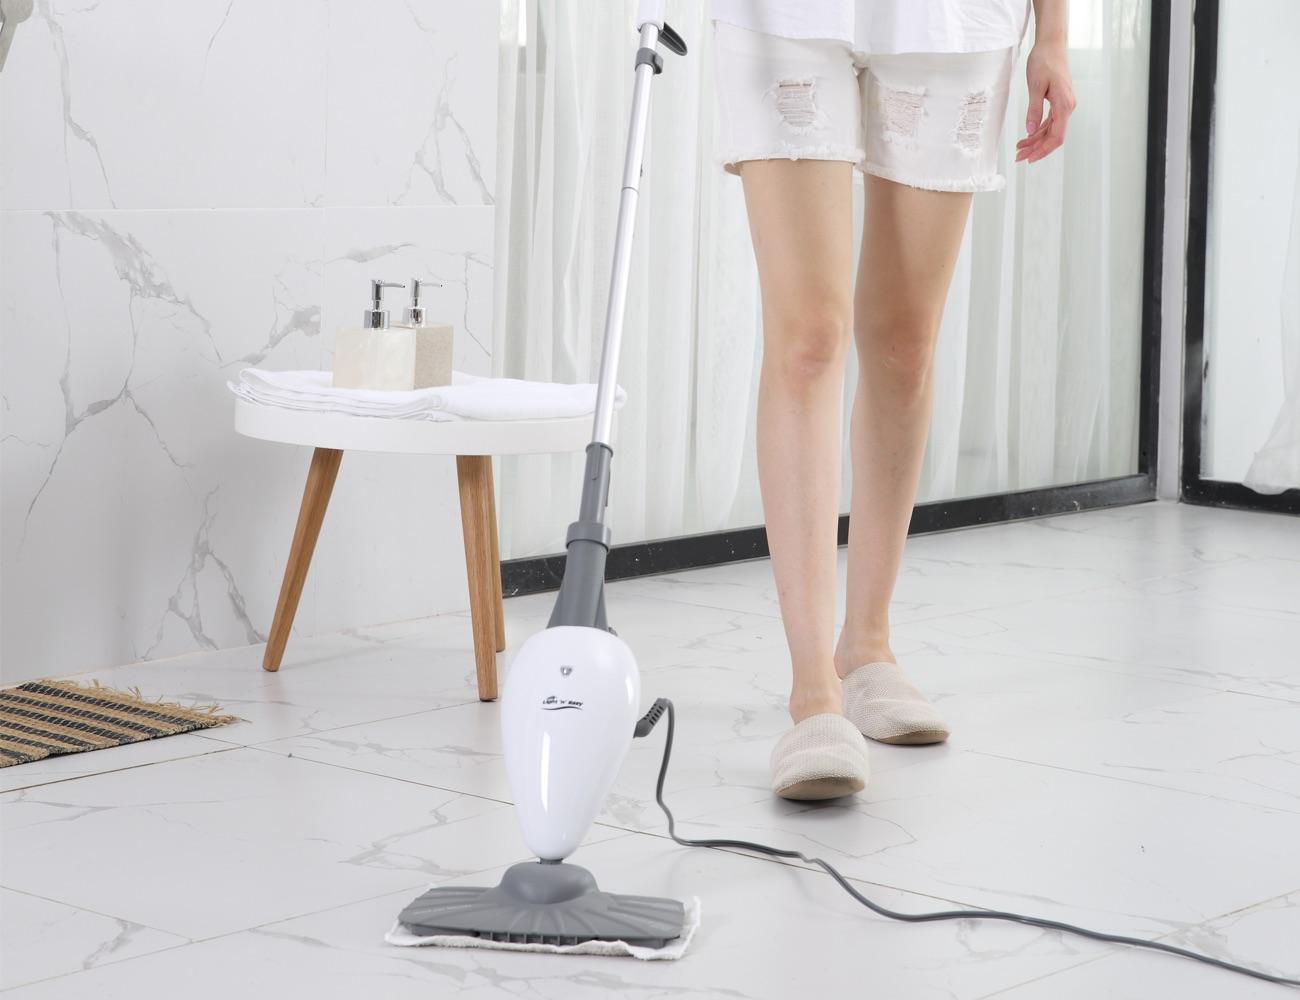 Light+%E2%80%98n%E2%80%99+Easy+Sanitizing+Steam+Mop